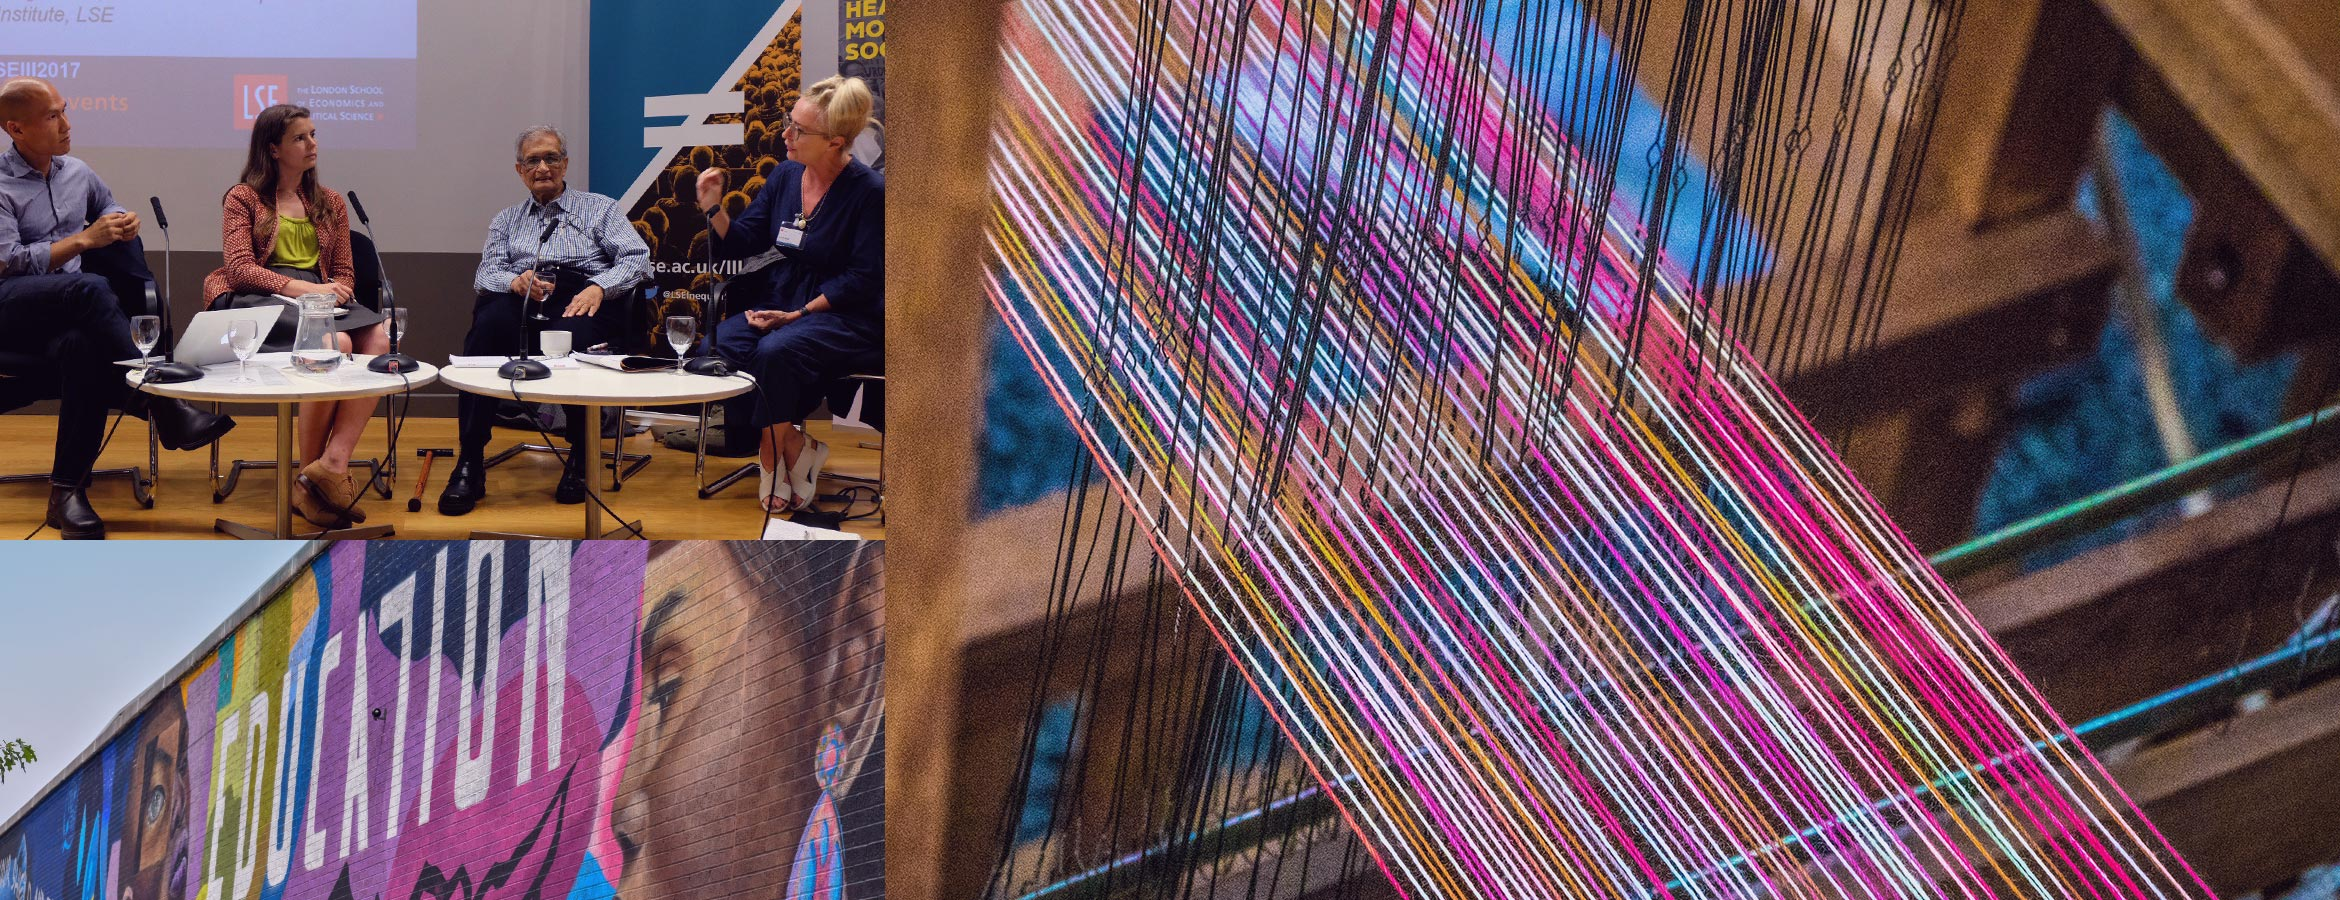 "<strong>The Loom</strong> is a symbol of cosmic creation and the structure upon which individual destiny is woven.  In Maya Cultures the goddess Ixchel, who is symbolized by the moon, taught the first woman how to weave at the beginning of time. <br>[source: <a href=""https://en.wikipedia.org/wiki/Loom"">en.wikipedia.org/wiki/Loom</a>]"